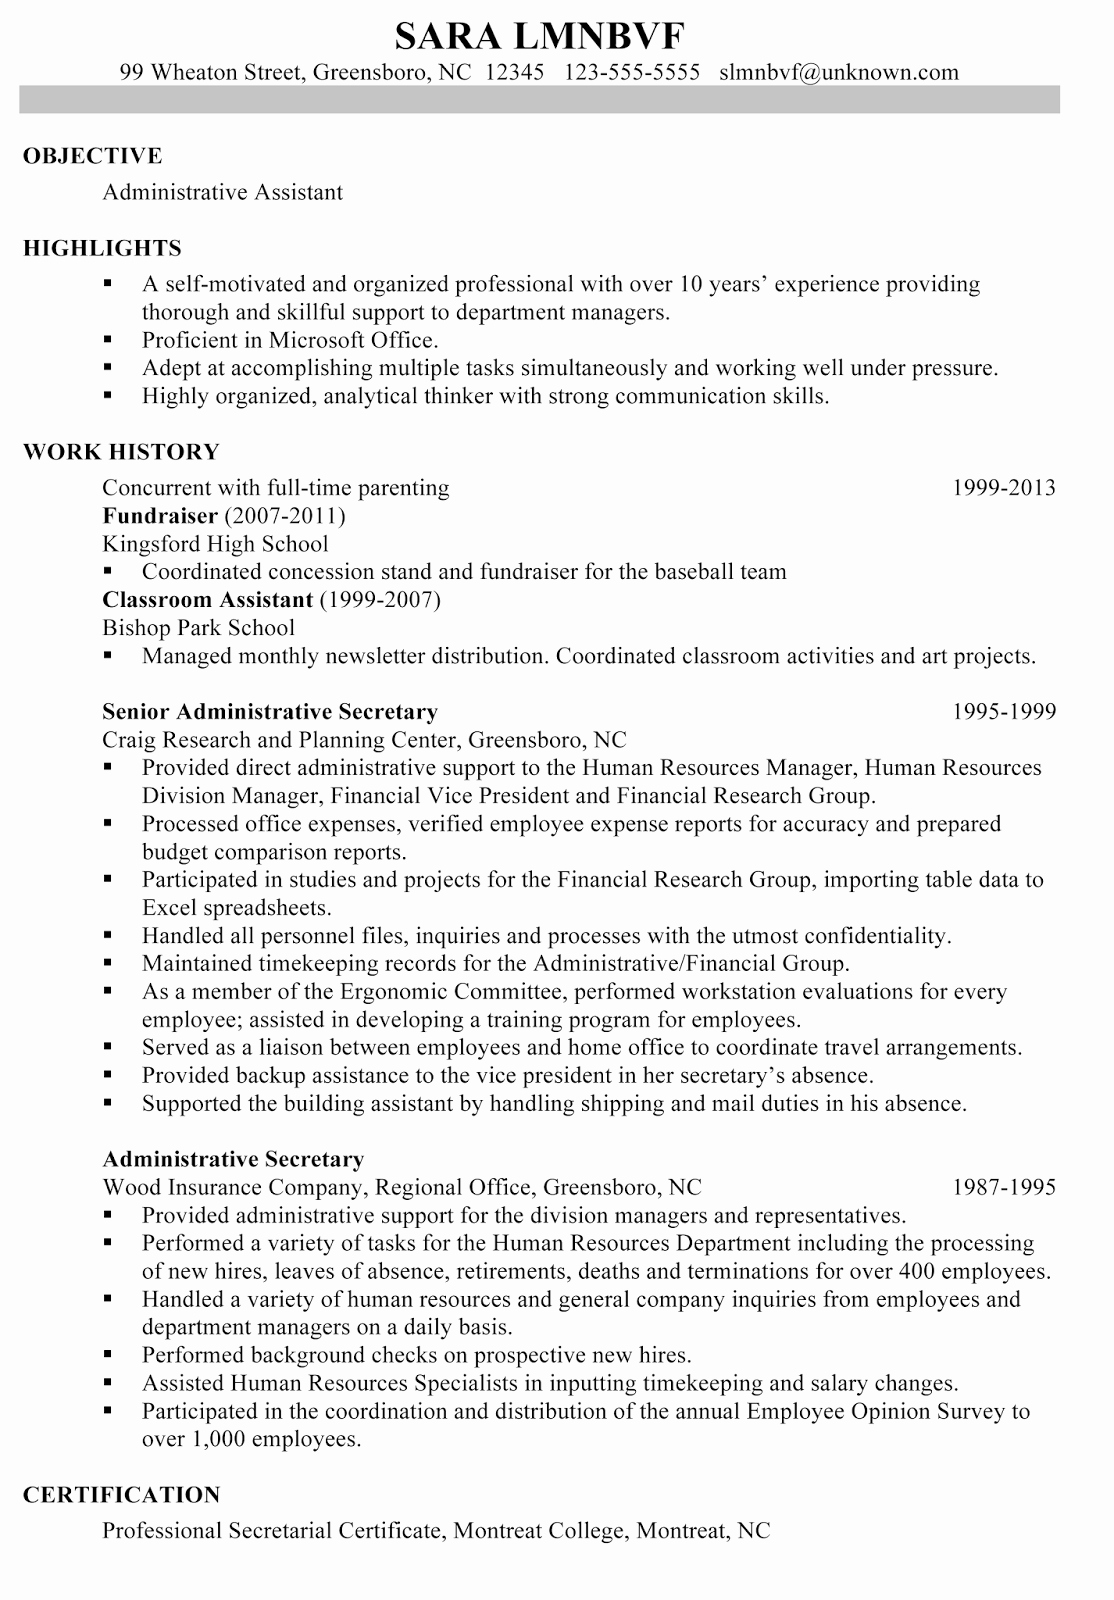 Administrative assistant Resume Objective Lovely Sample Objective Resume for Administrative assistant